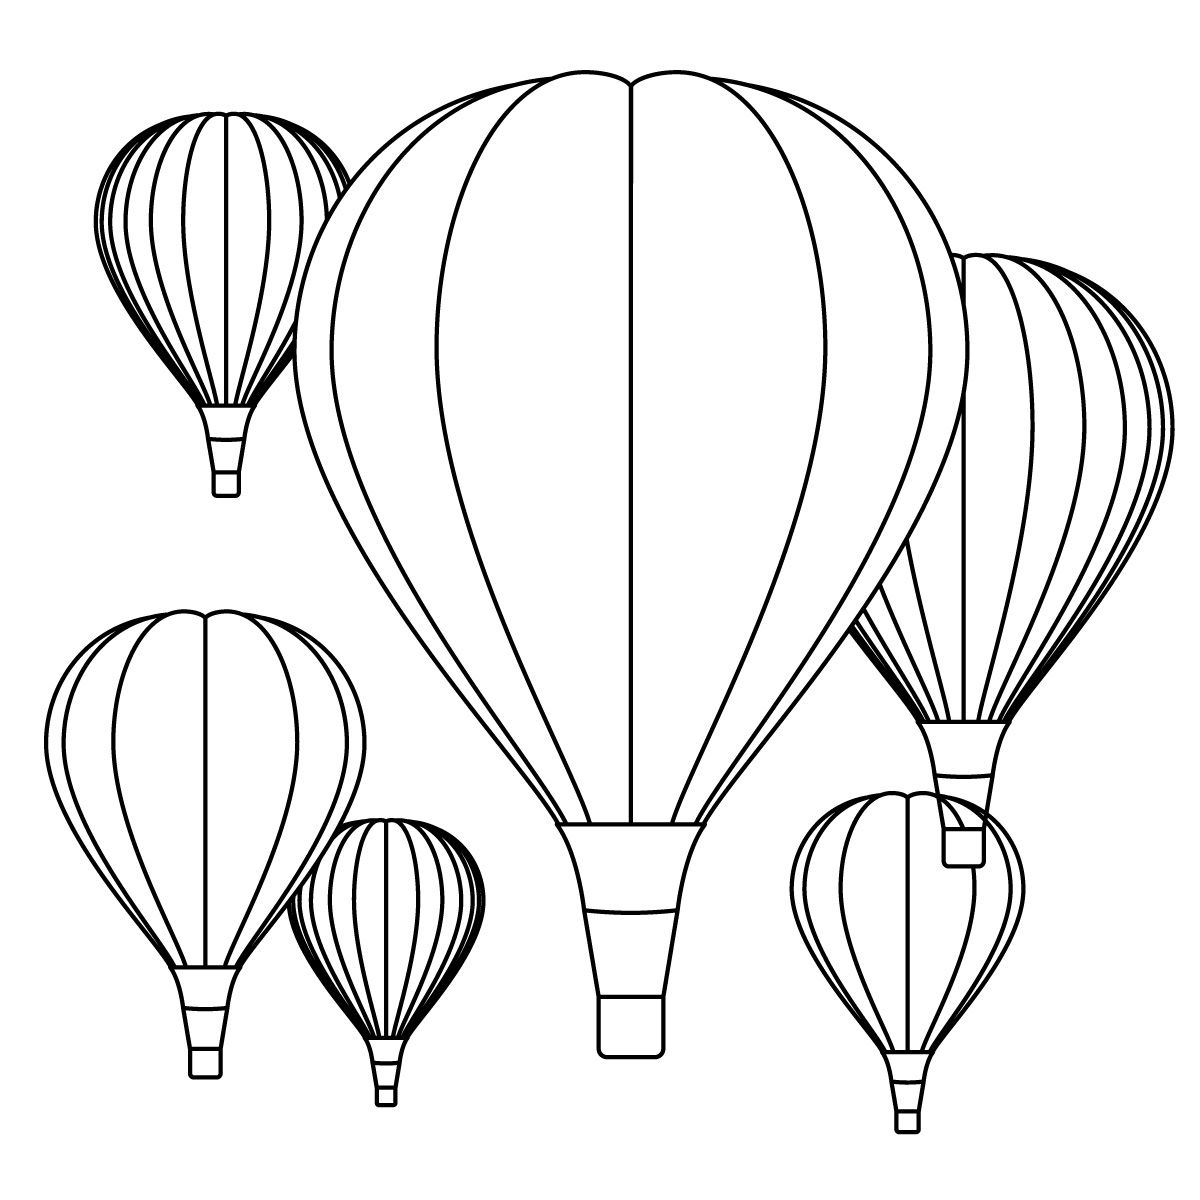 A school of fish: Hot Air Balloon Unit